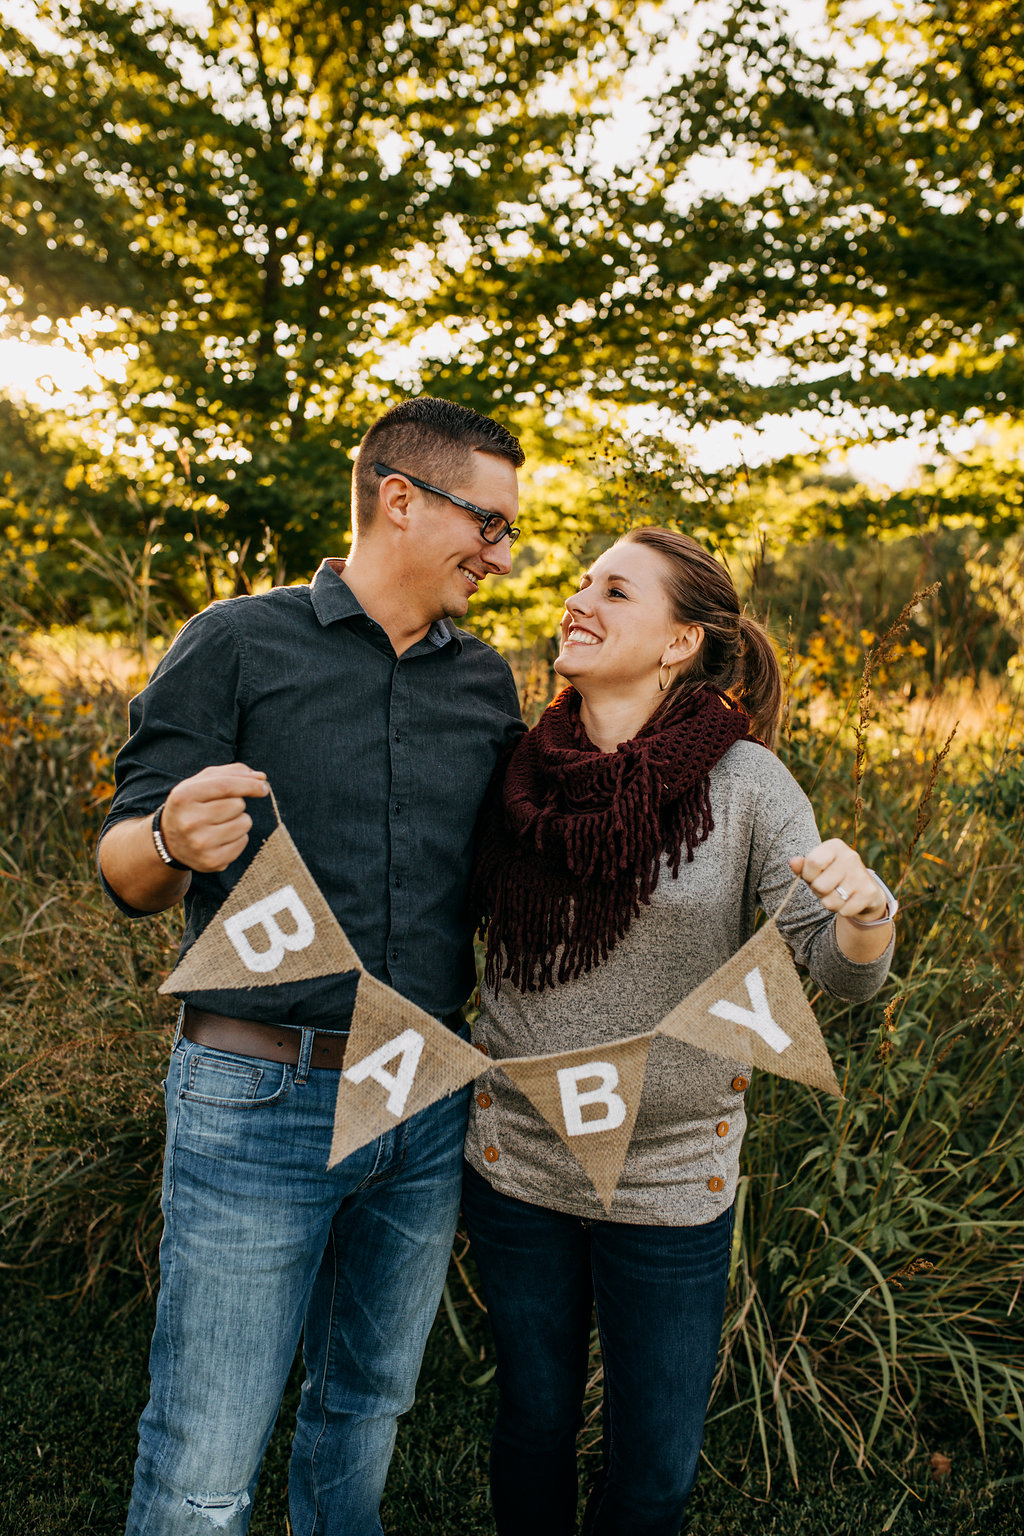 Hobbs-Pregnancy-Announcement-Baby-Pregnant-Dog-Michelle-Christine-Photography-18